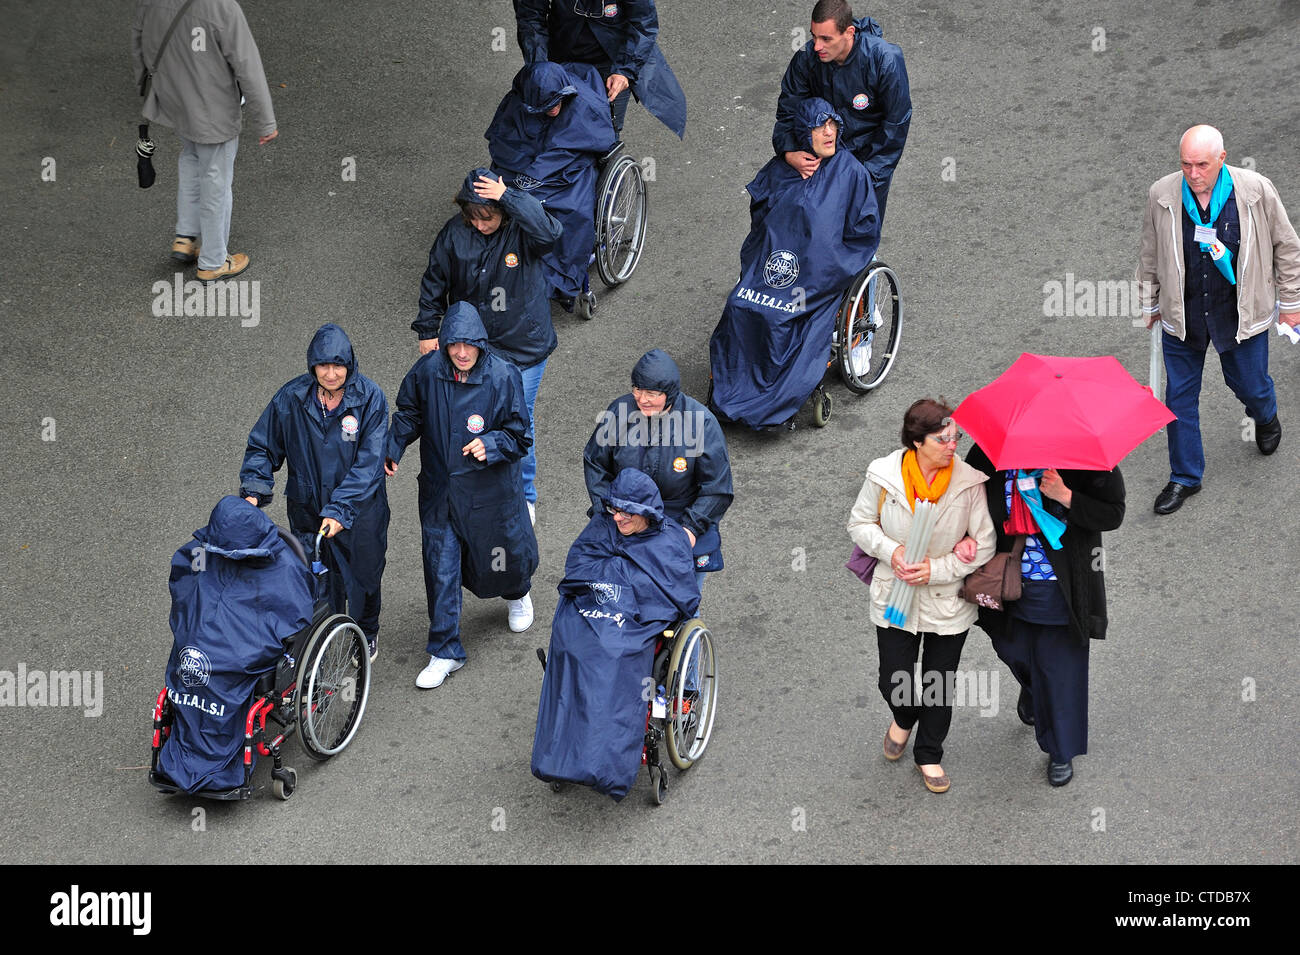 Disabled handicapped pilgrims in wheelchairs in the rain visiting Sanctuary of Our Lady of Lourdes, Pyrenees, France - Stock Image